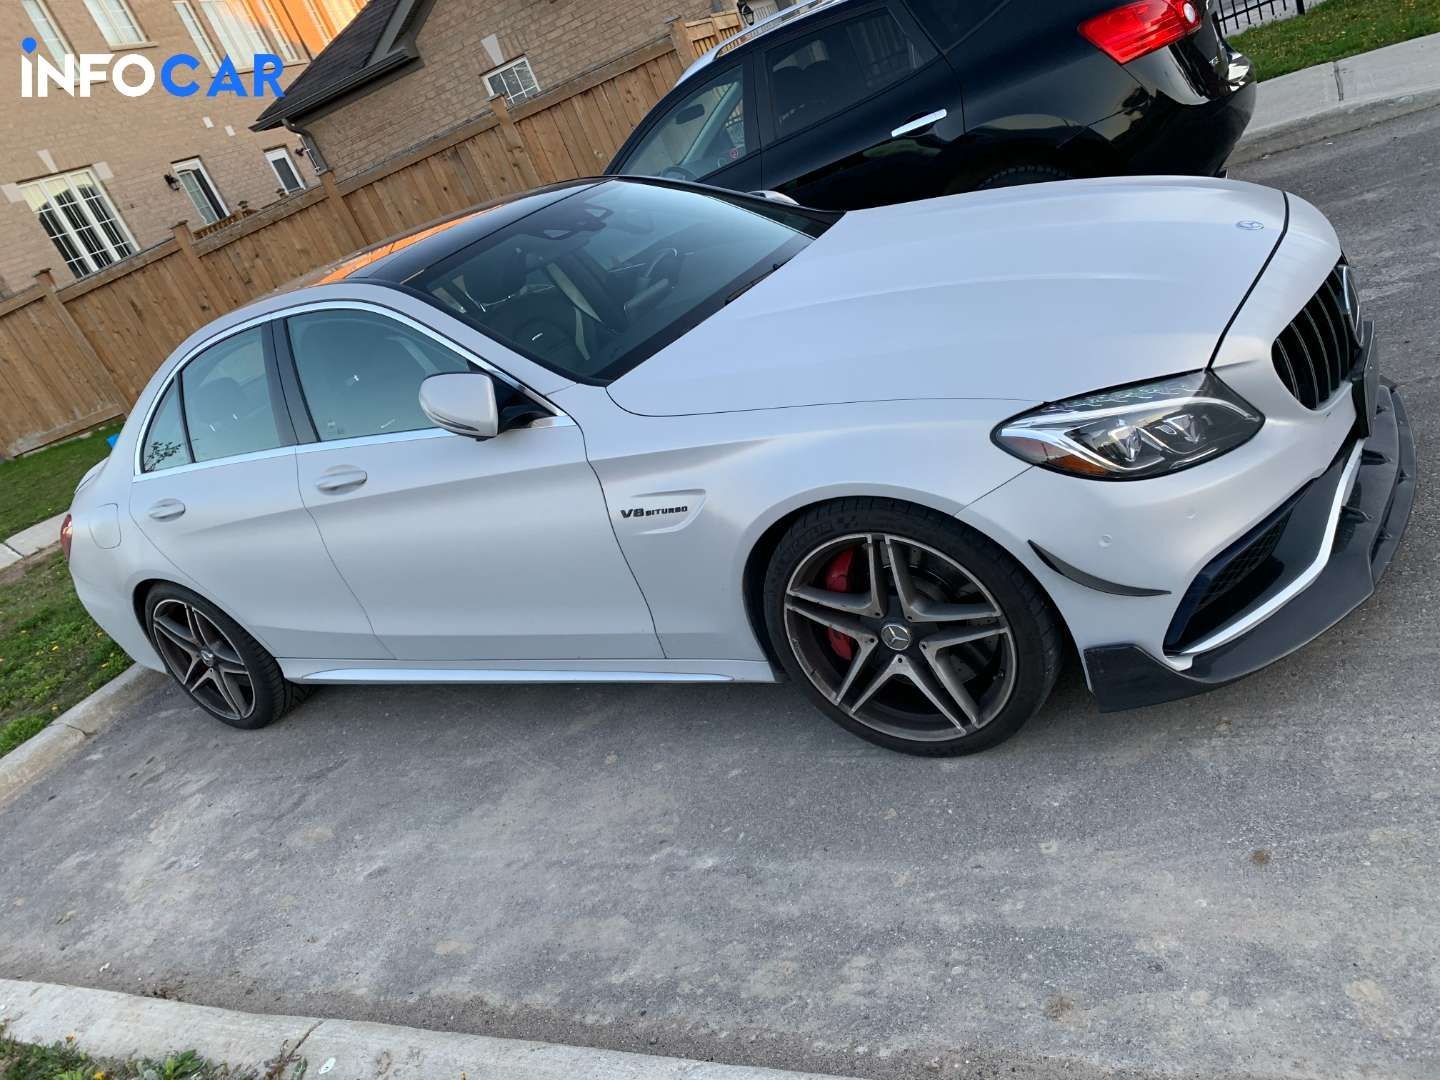 2017 Mercedes-Benz C-Class c63s - INFOCAR - Toronto's Most Comprehensive New and Used Auto Trading Platform